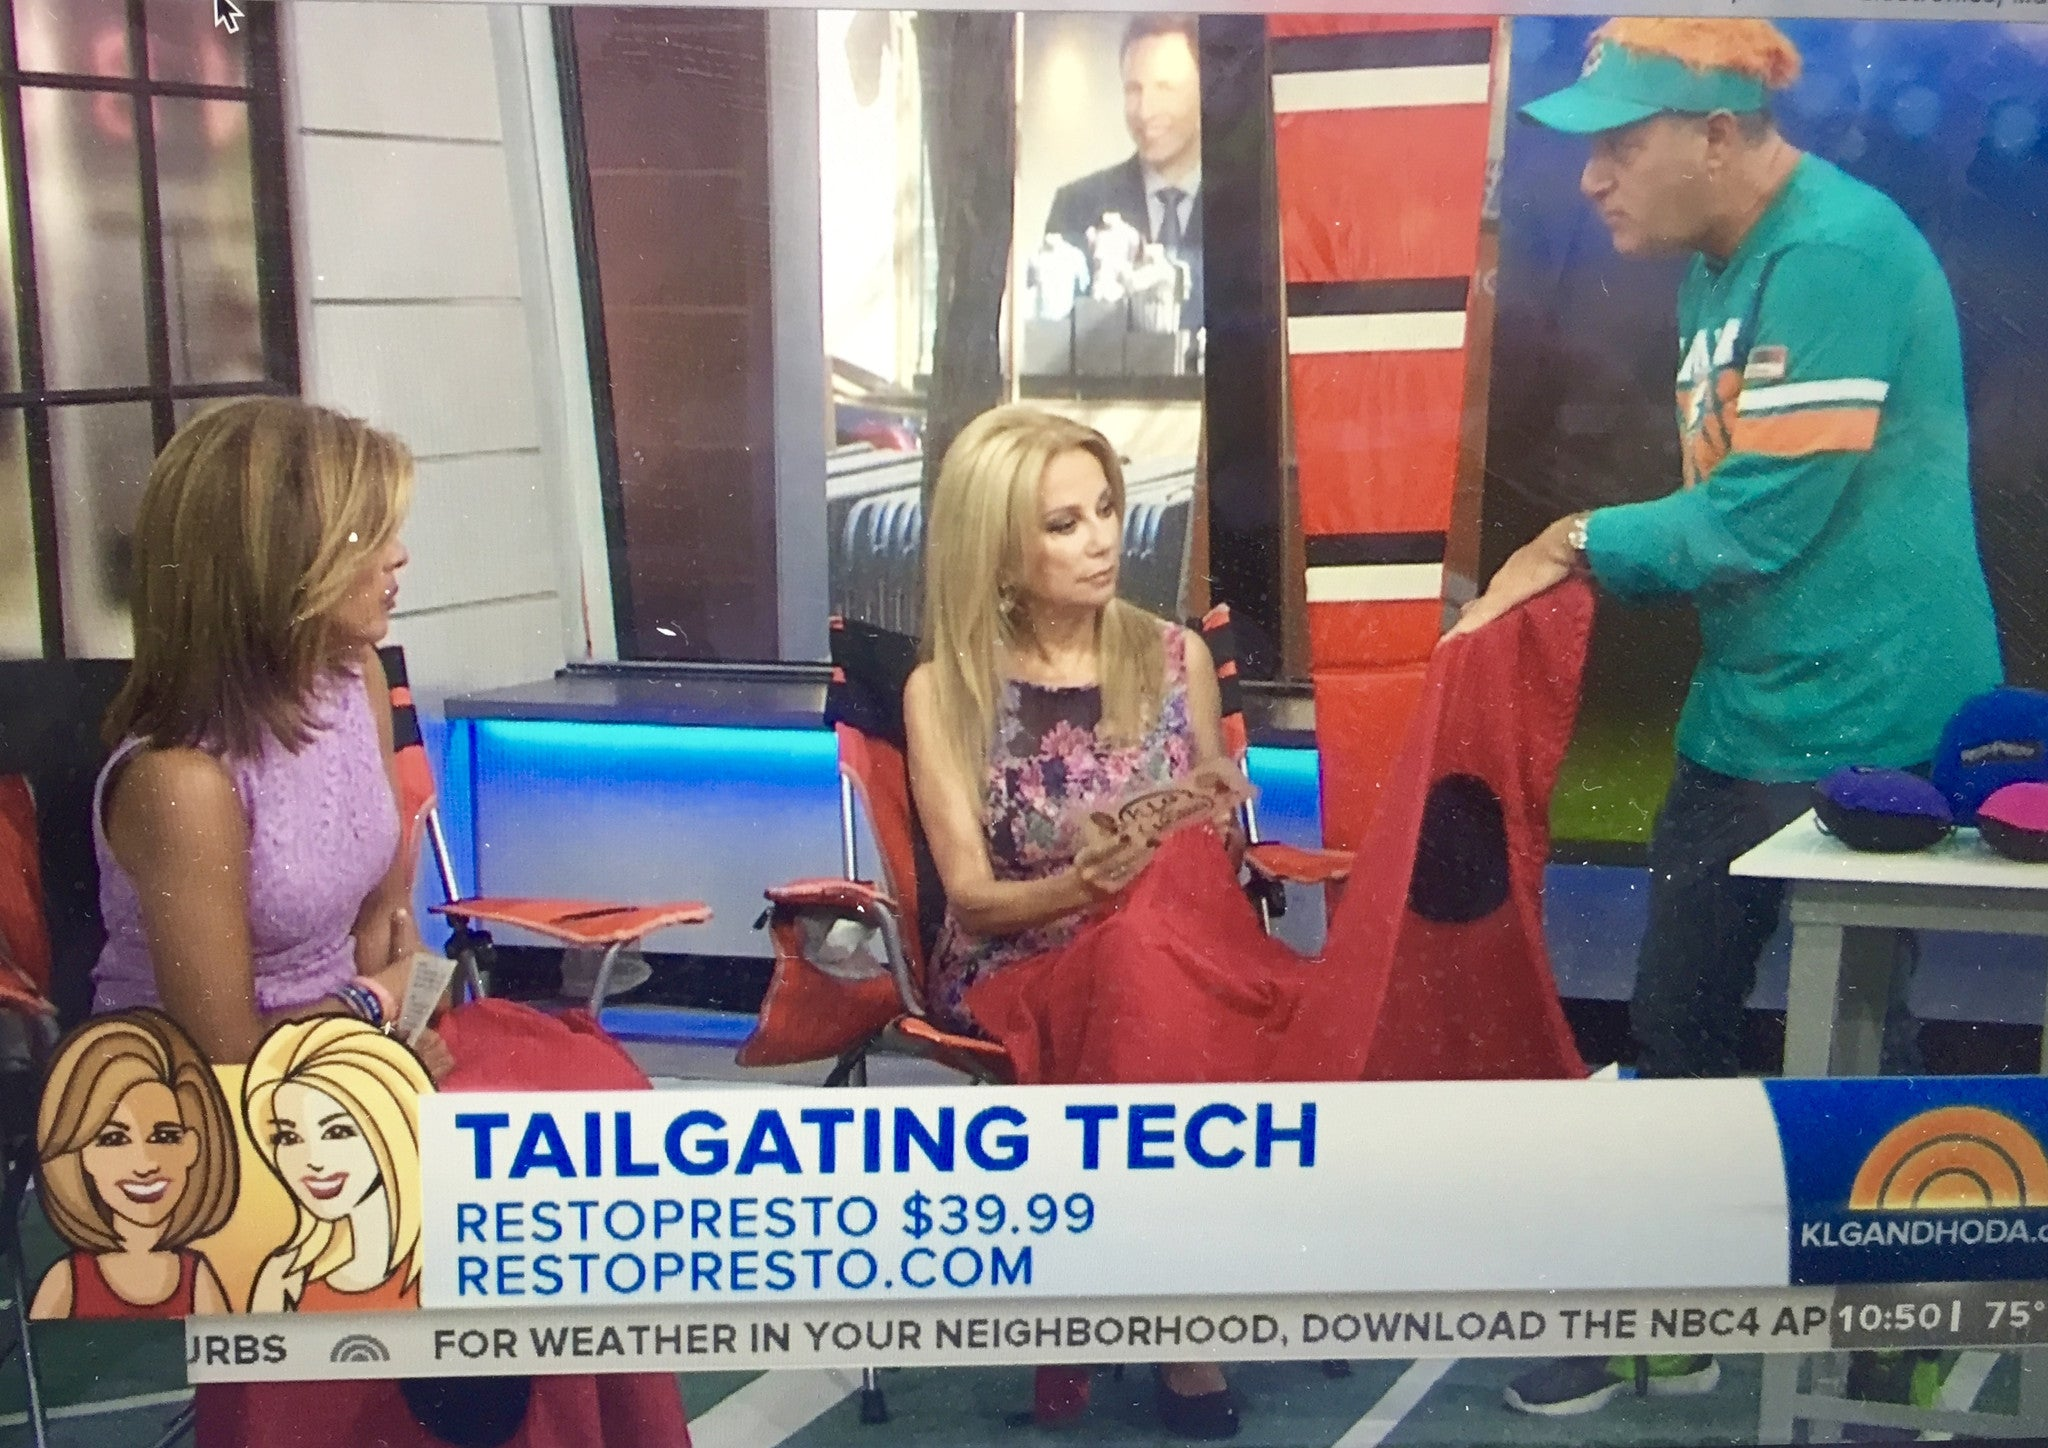 RestoPresto was featured on the TODAY SHOW with Kathie Lee & Hoda!